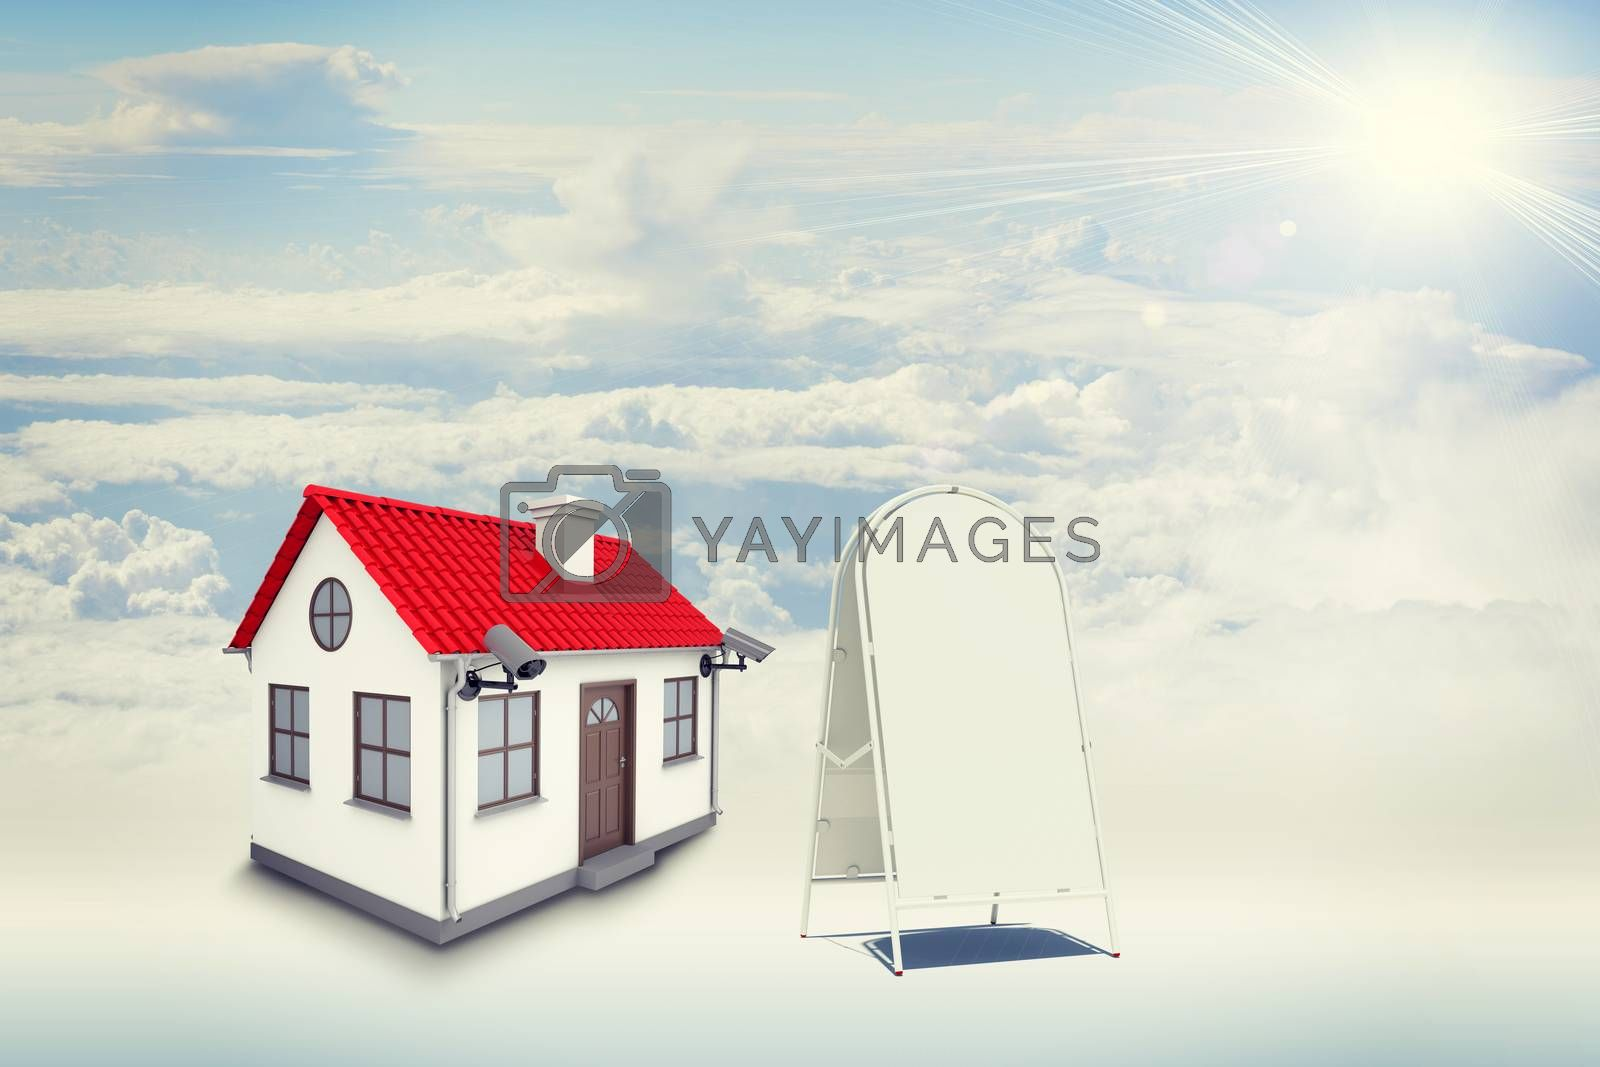 White house with red roof, brown door, chimney and outward chambers in clouds. Near with house sidewalk sign. Background sun shines brightly on large clouds